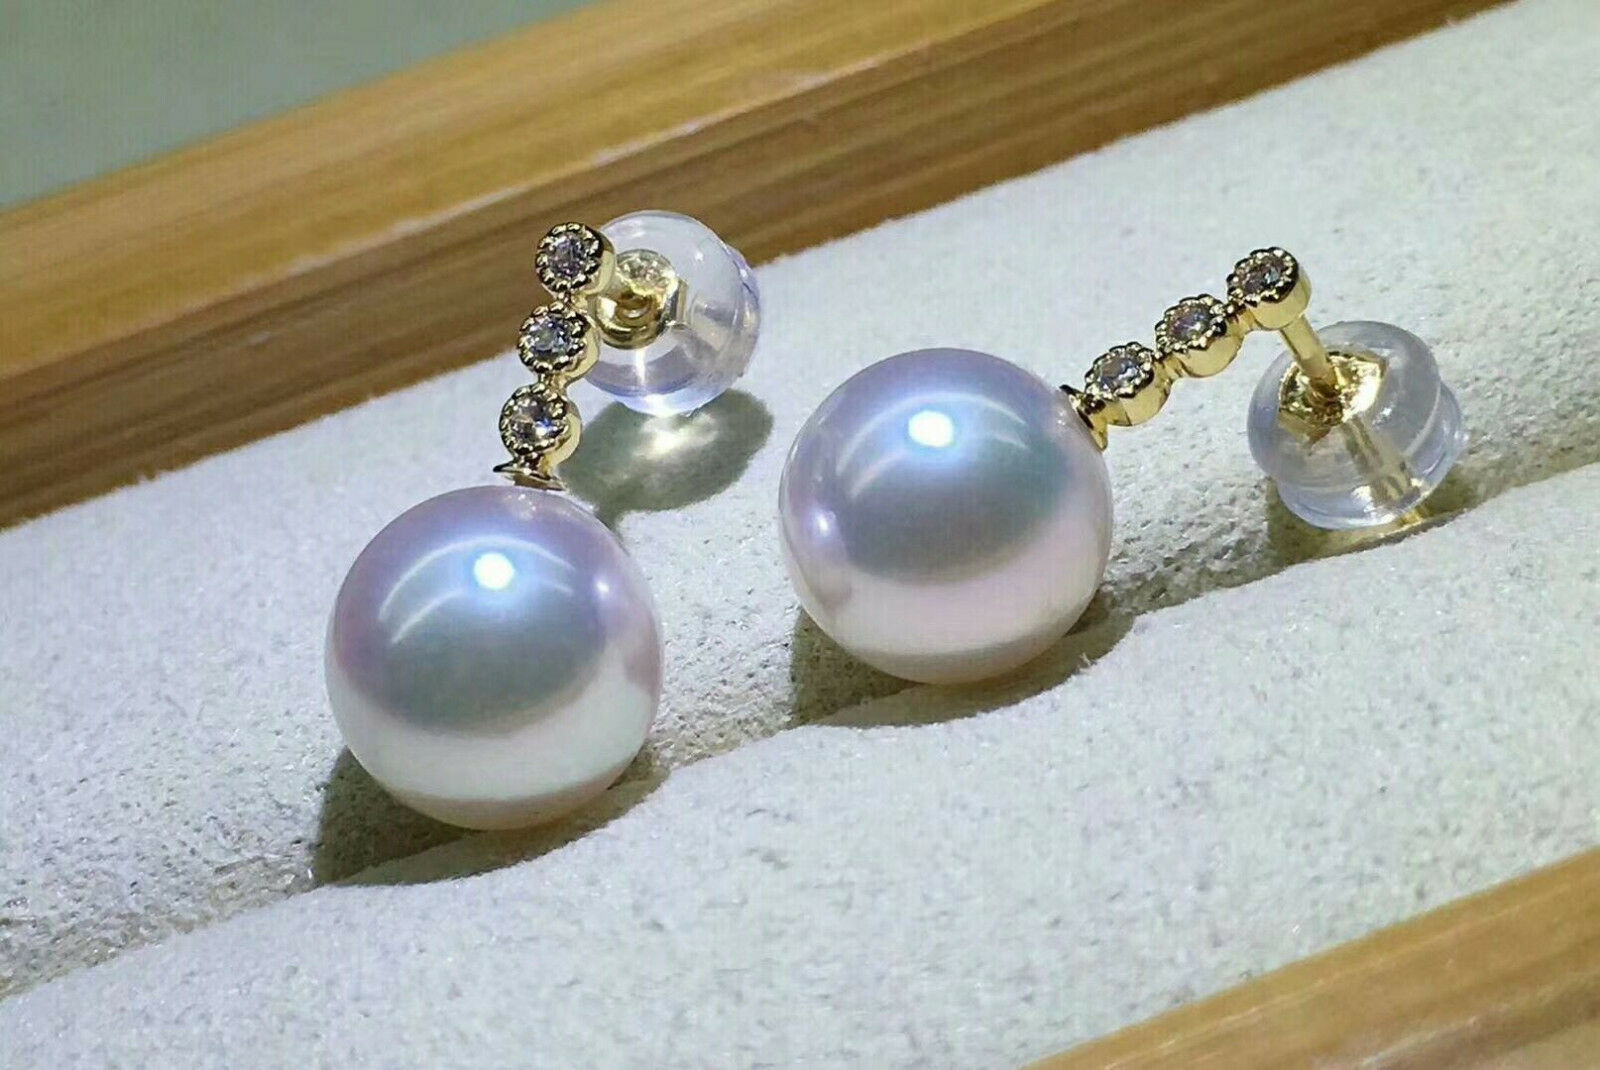 aa880e771c191 white sea south 10-11mm Gorgeous pearl round 18k earring ...